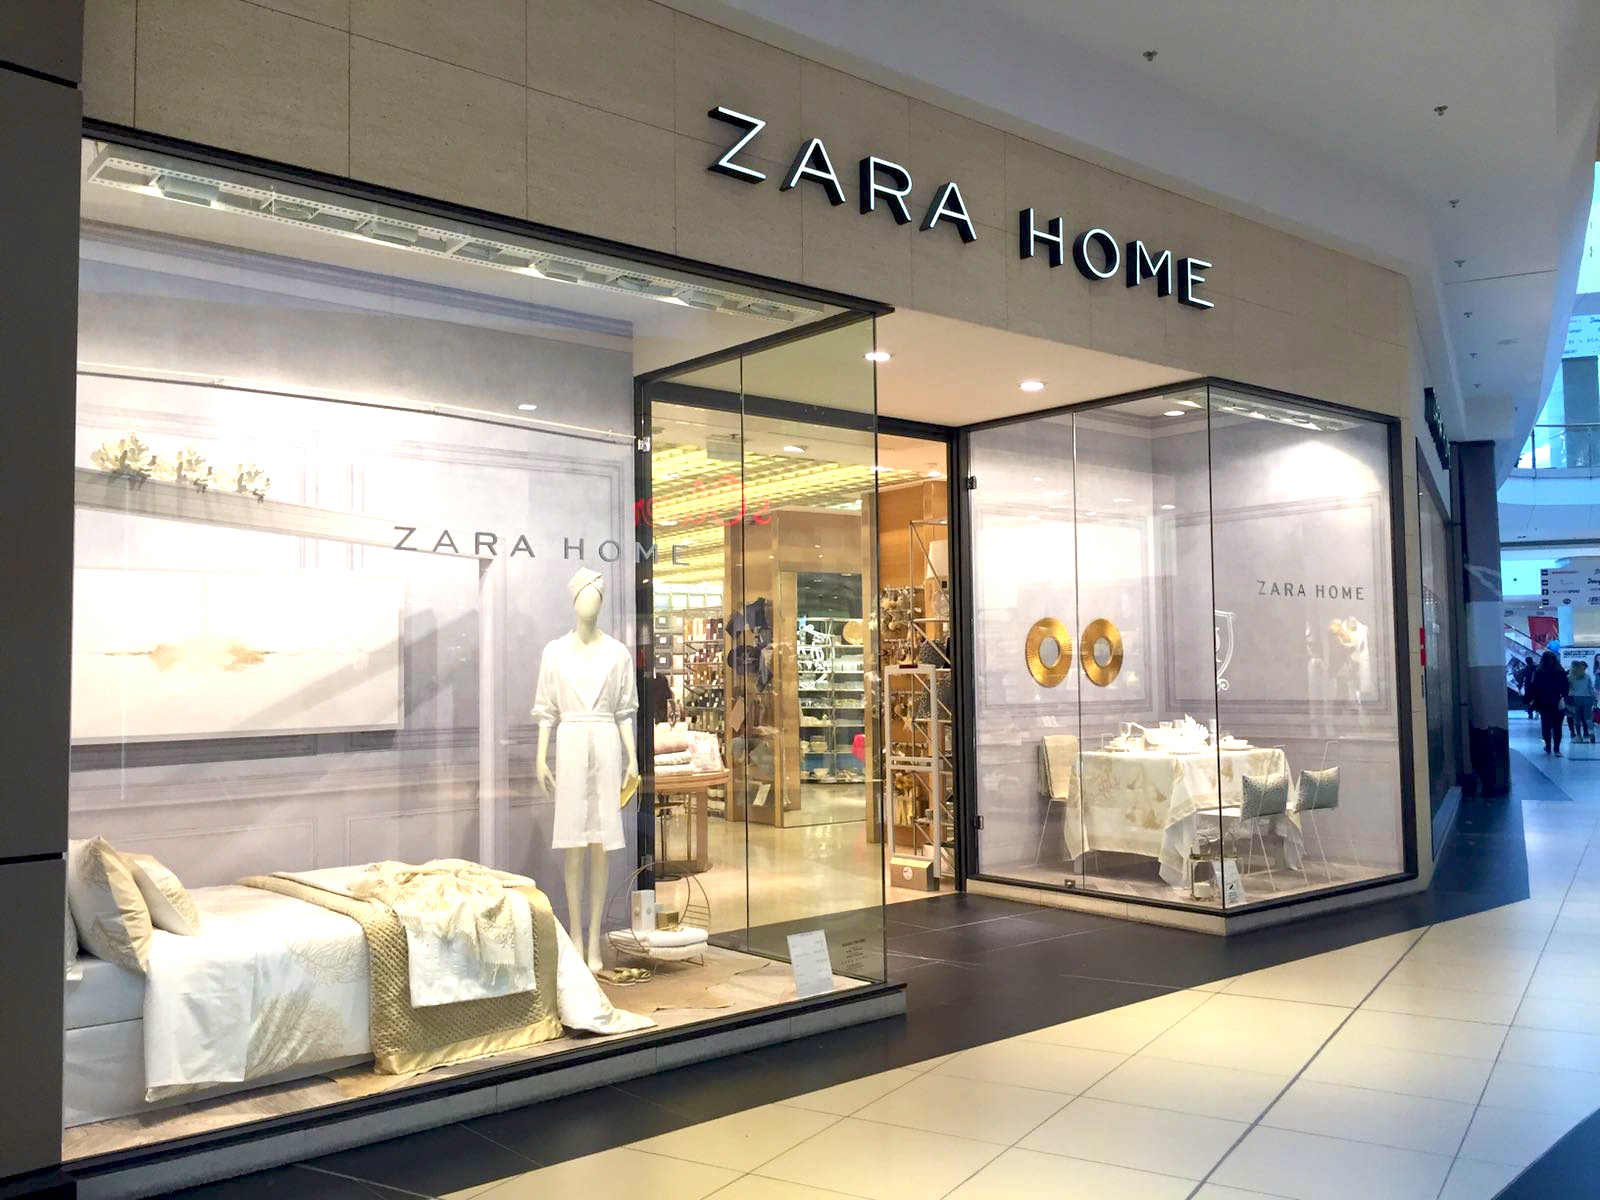 5 pretty decor finds from my zara home shopping spree for Home decor zara